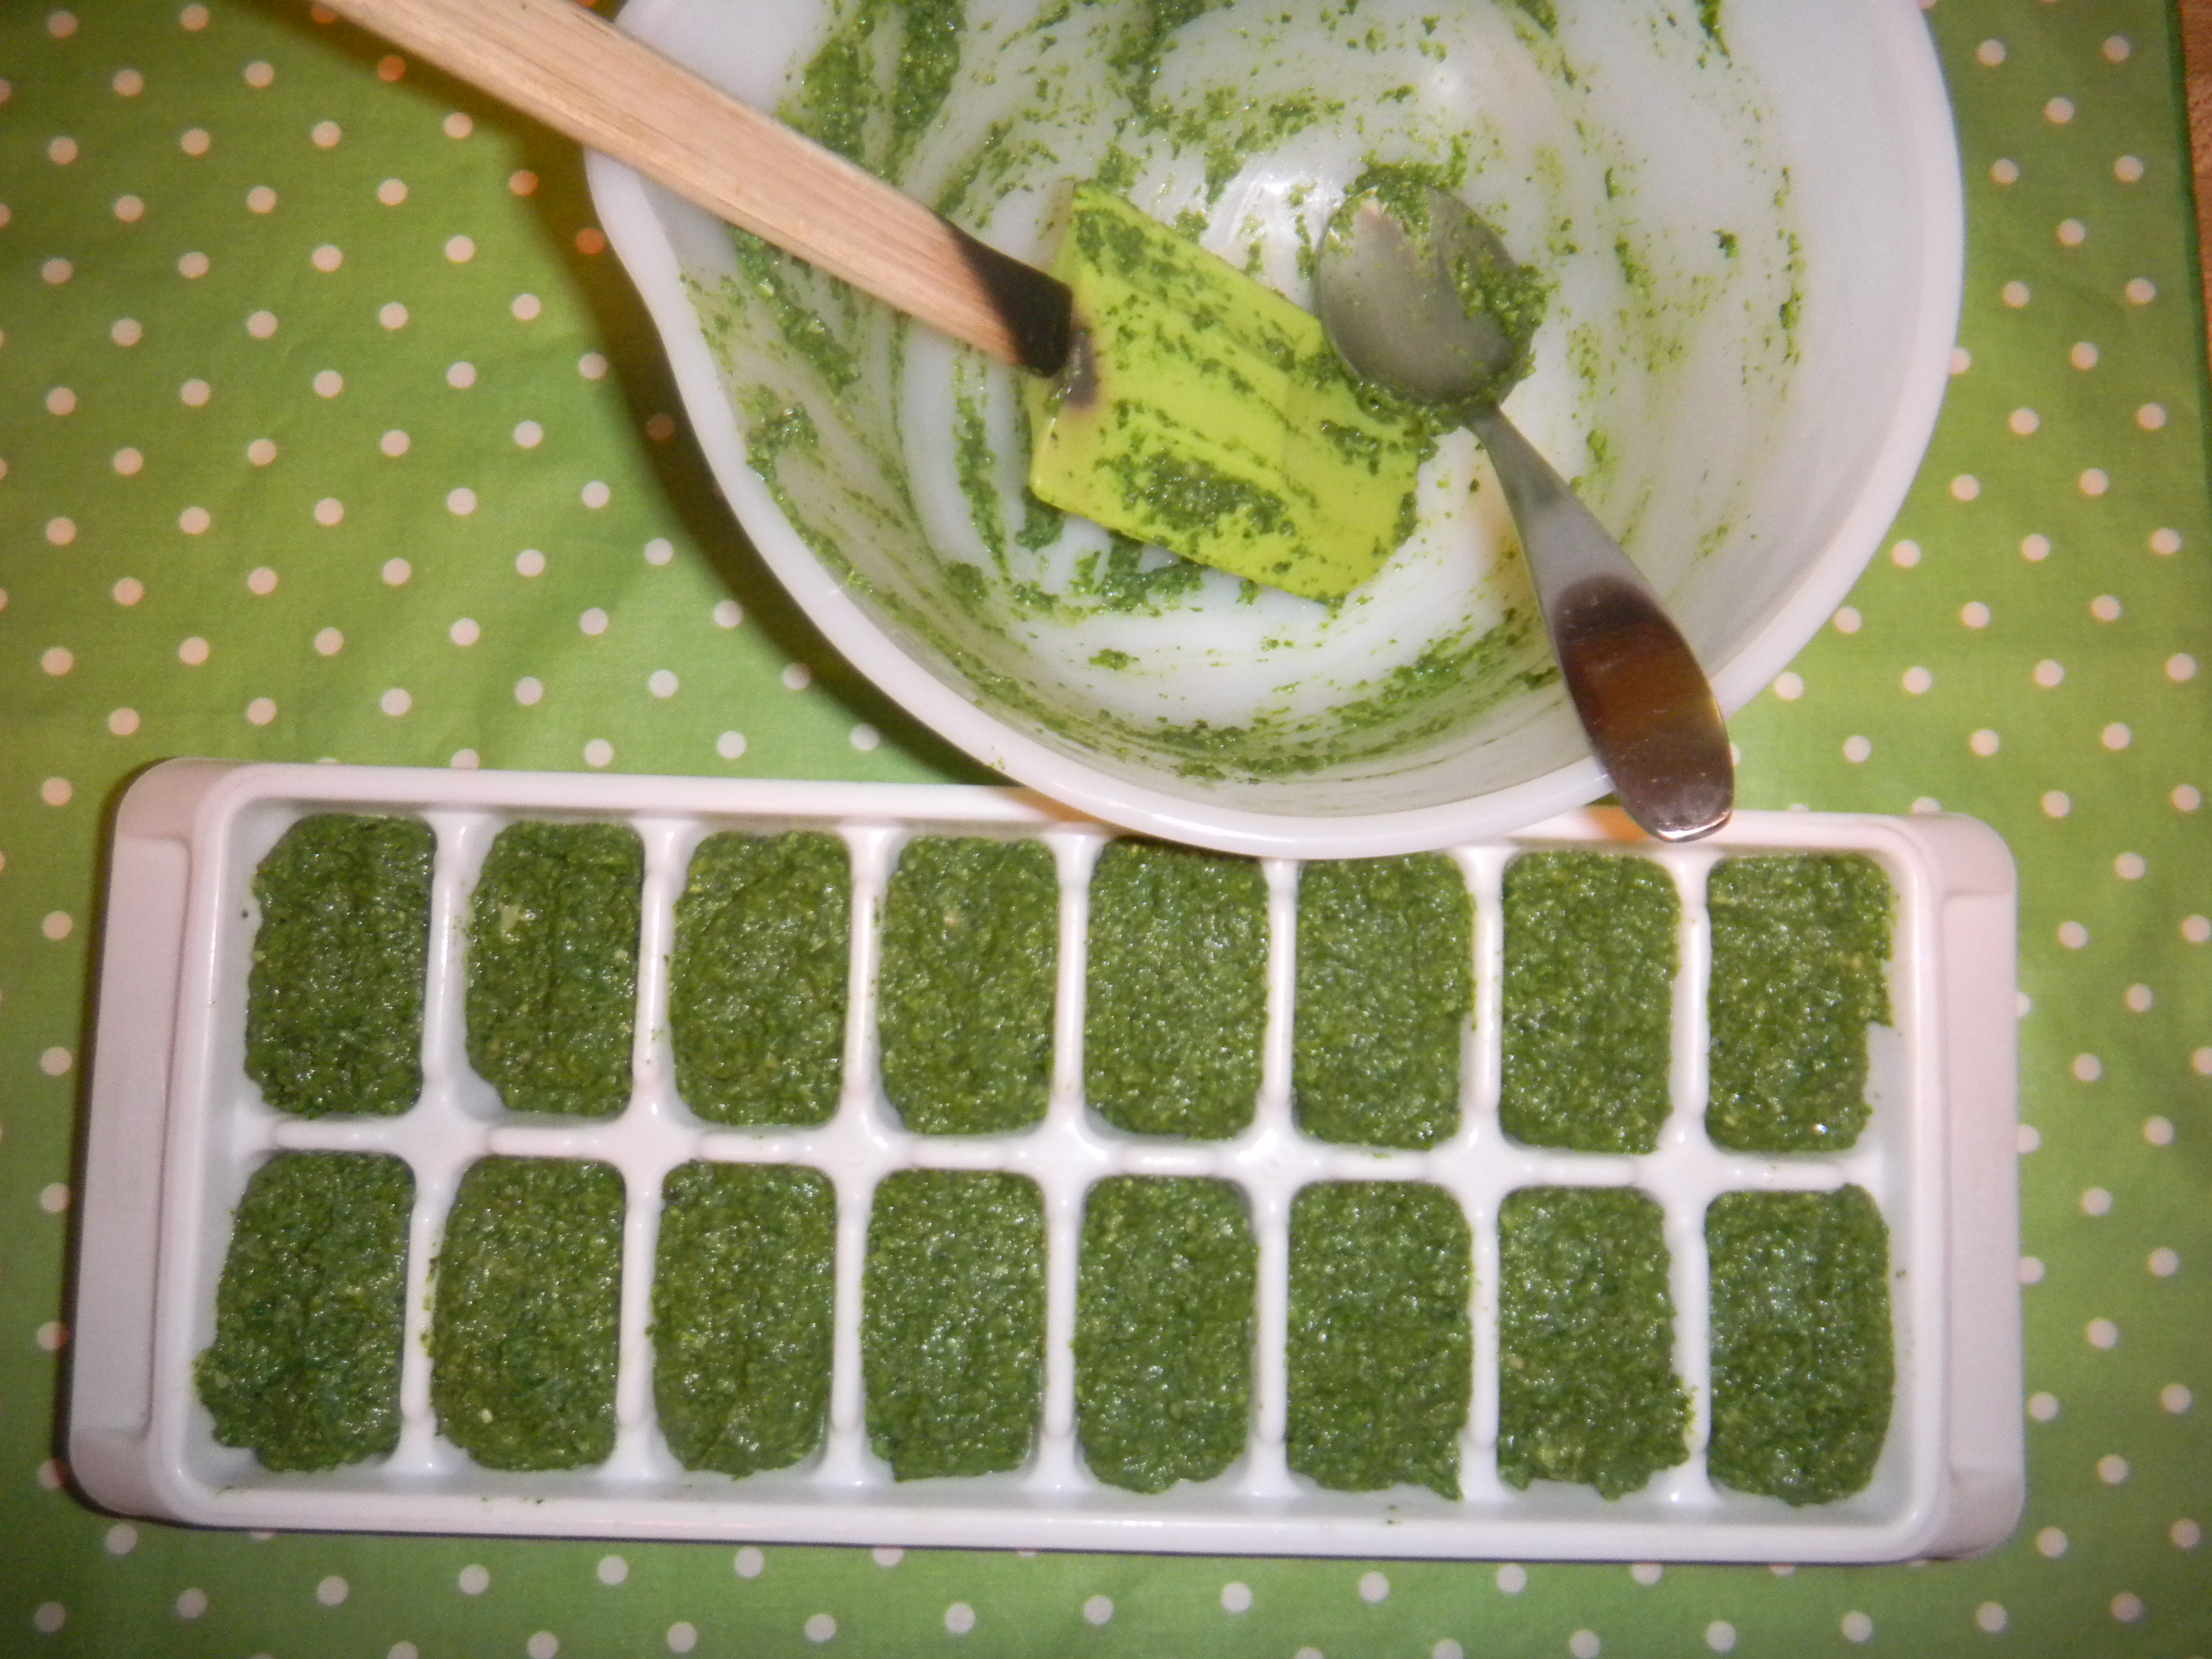 pesto nettles pesto recipes dishmaps nettle pesto the rowdy chowgirl ...